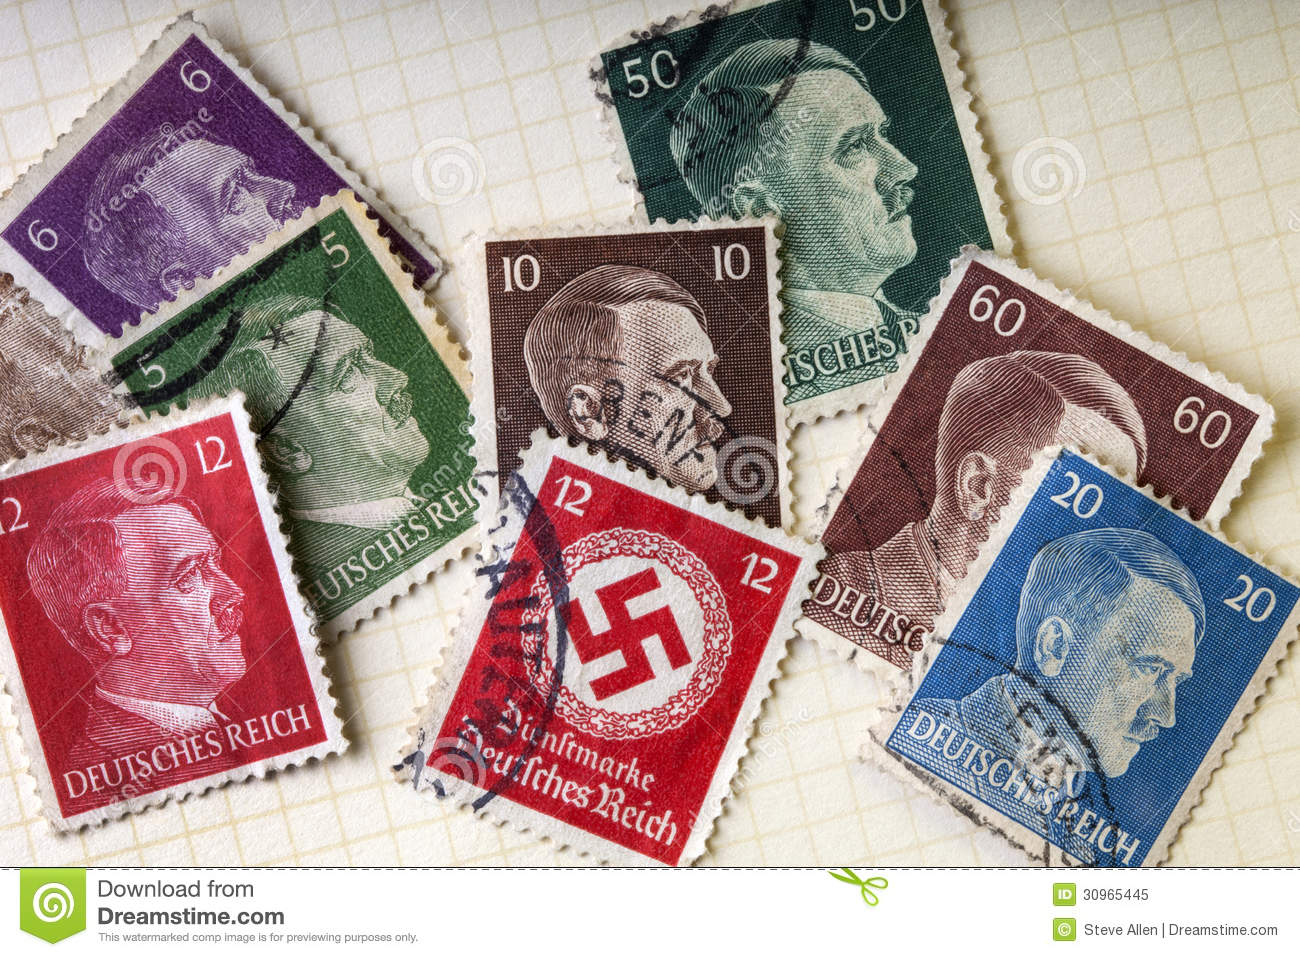 Royalty Free Stock Photo German War St s Adolph Hitler Swastika Third Reich Postage Second World Nazi Image30965445 further Flat Brim Hat Fitted Snapback Photoshop Mockup likewise Design An Nfl Uni Part Ii further Rip Honoring The Life And Death Of Xbox One S Default Gamerpics in addition 419633. on design your football helmet